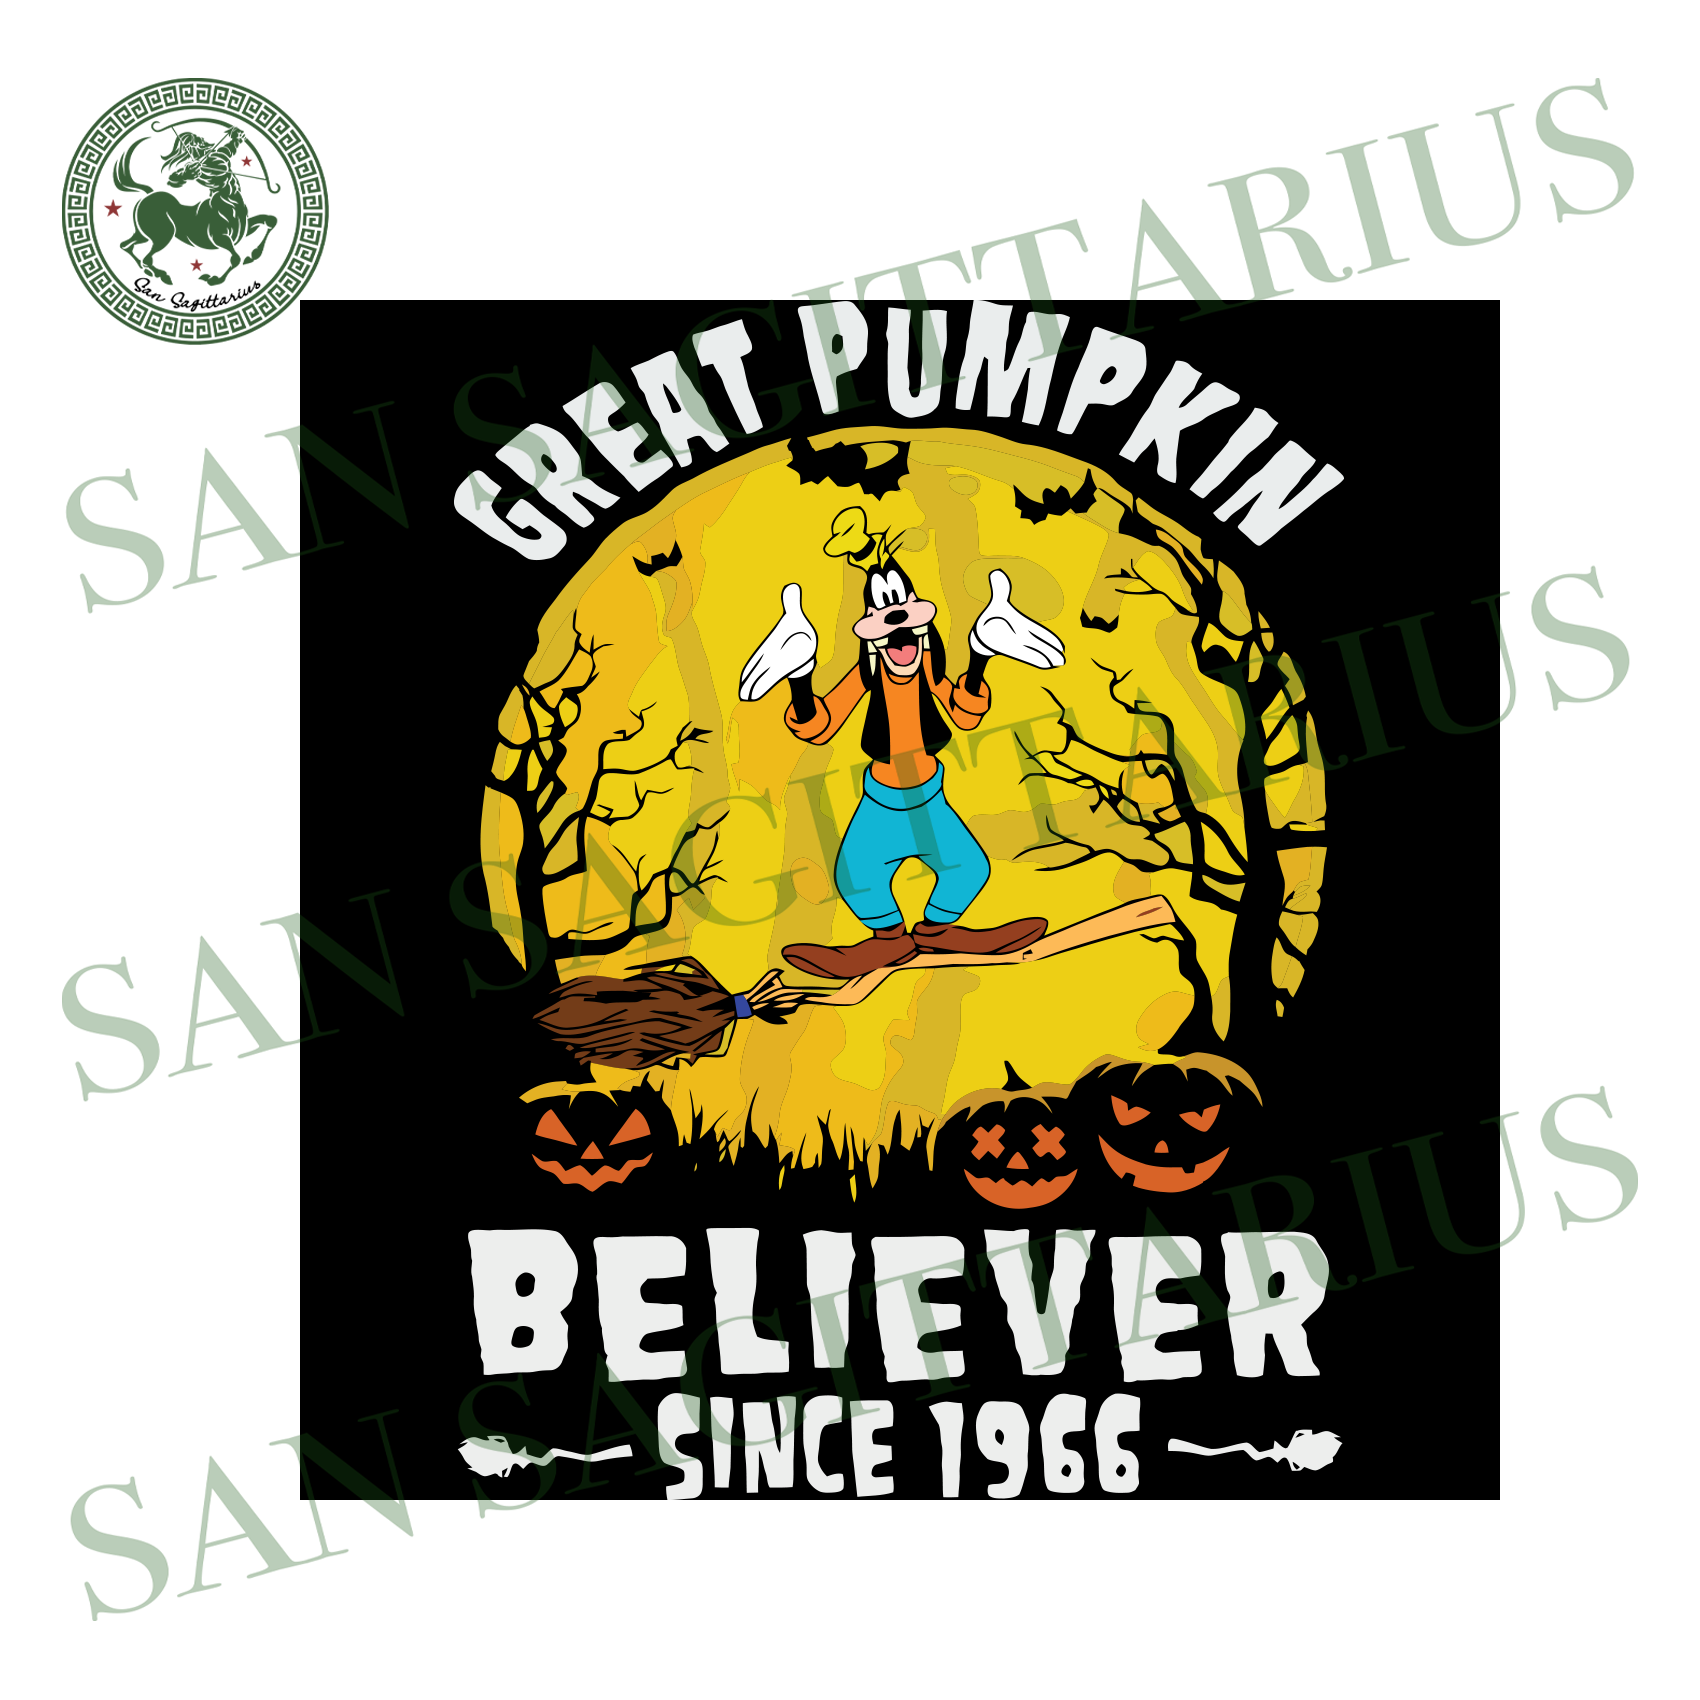 Goofy Great Pumpkin Believer Since 1966, Halloween Svg, Happy Halloween, Halloween Shirt, Nightmare Svg, Pumpkin Svg, Disney Svg, Goofy Svg, Goofy Shirt, Goofy Gift, Disney Character Svg